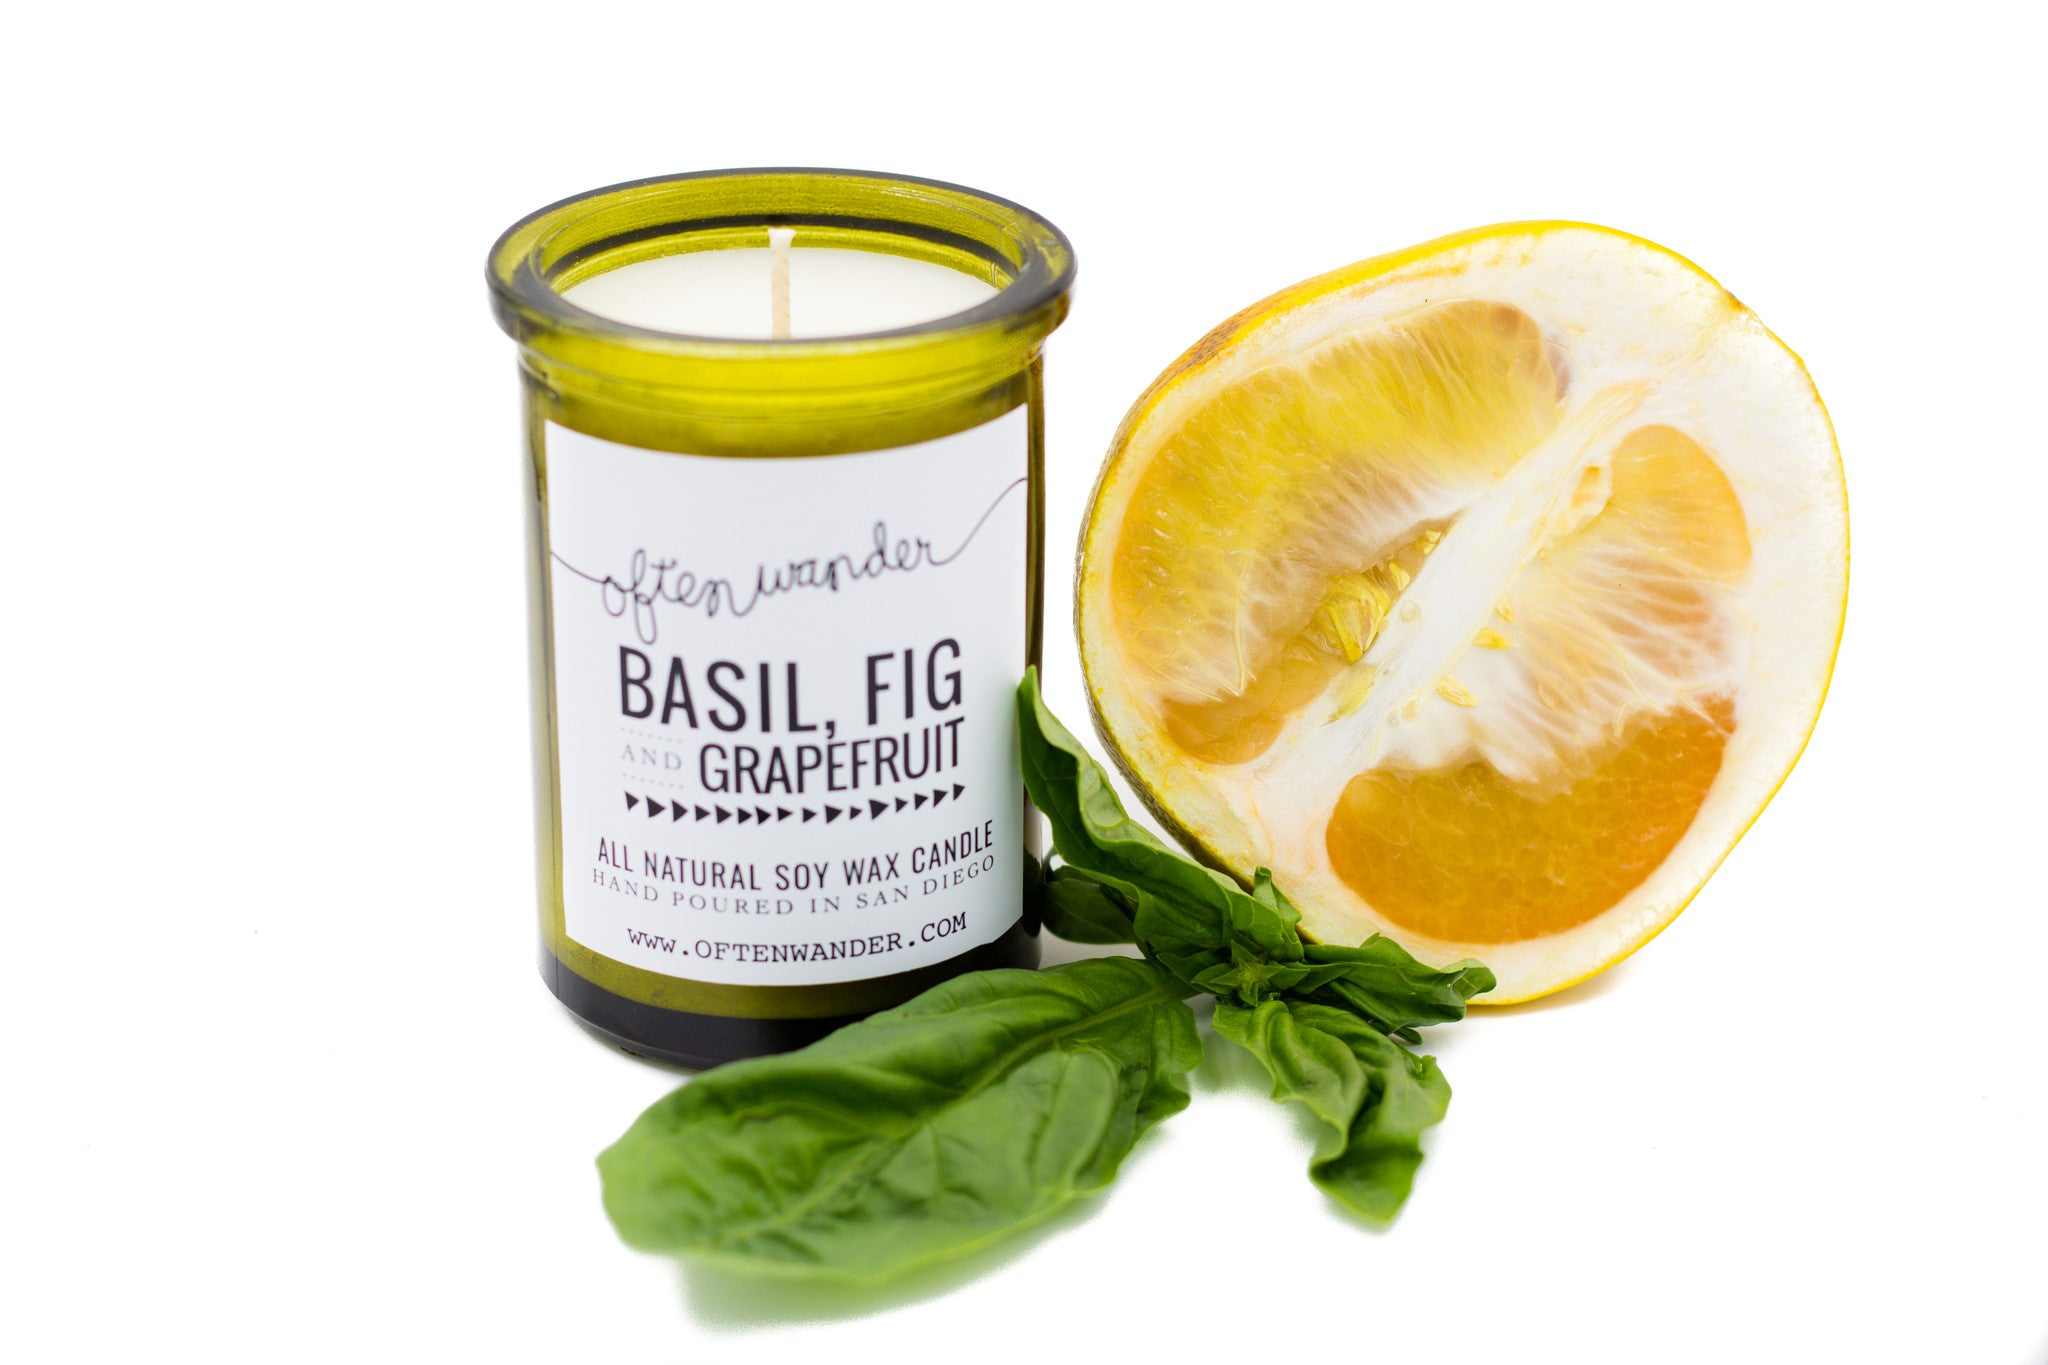 Apothec Candle - Basil Fig and Grapefruit